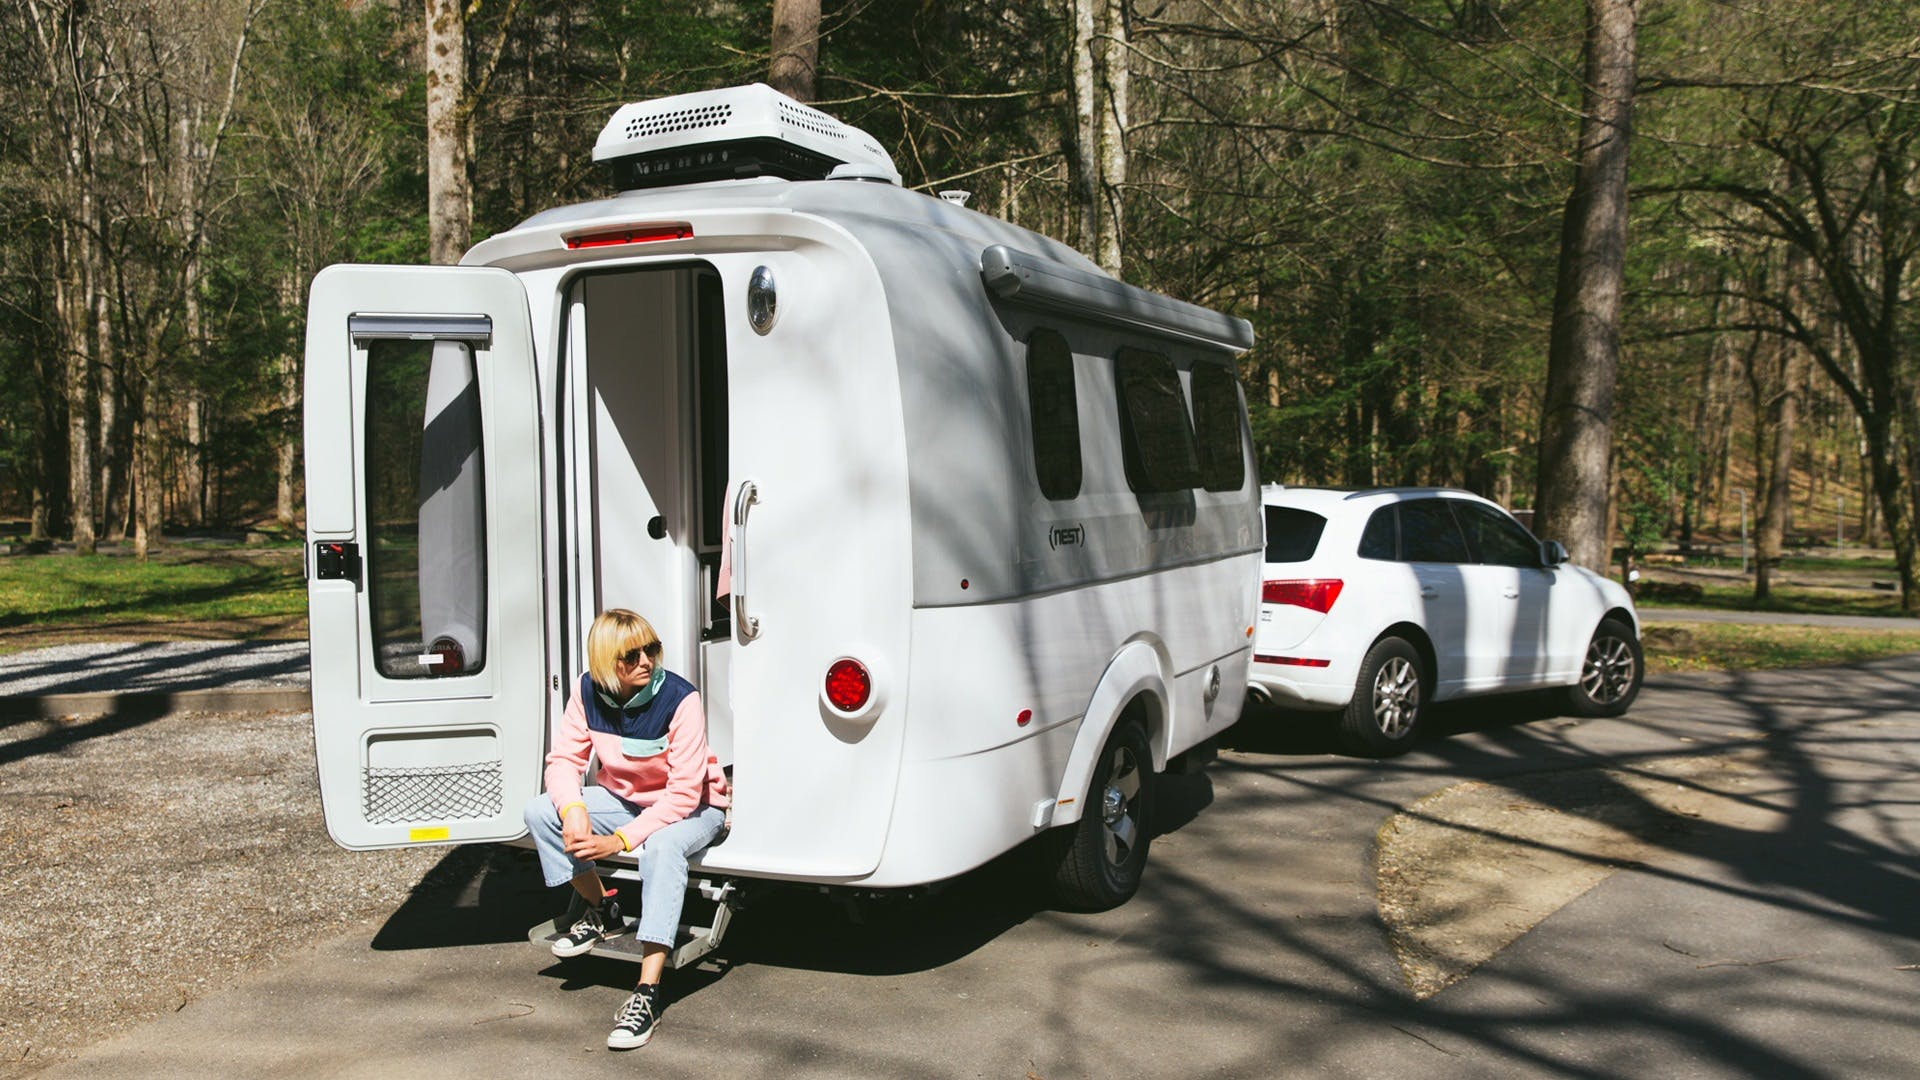 Airstream Travel Trailer Nest rear door open trees camping campground road